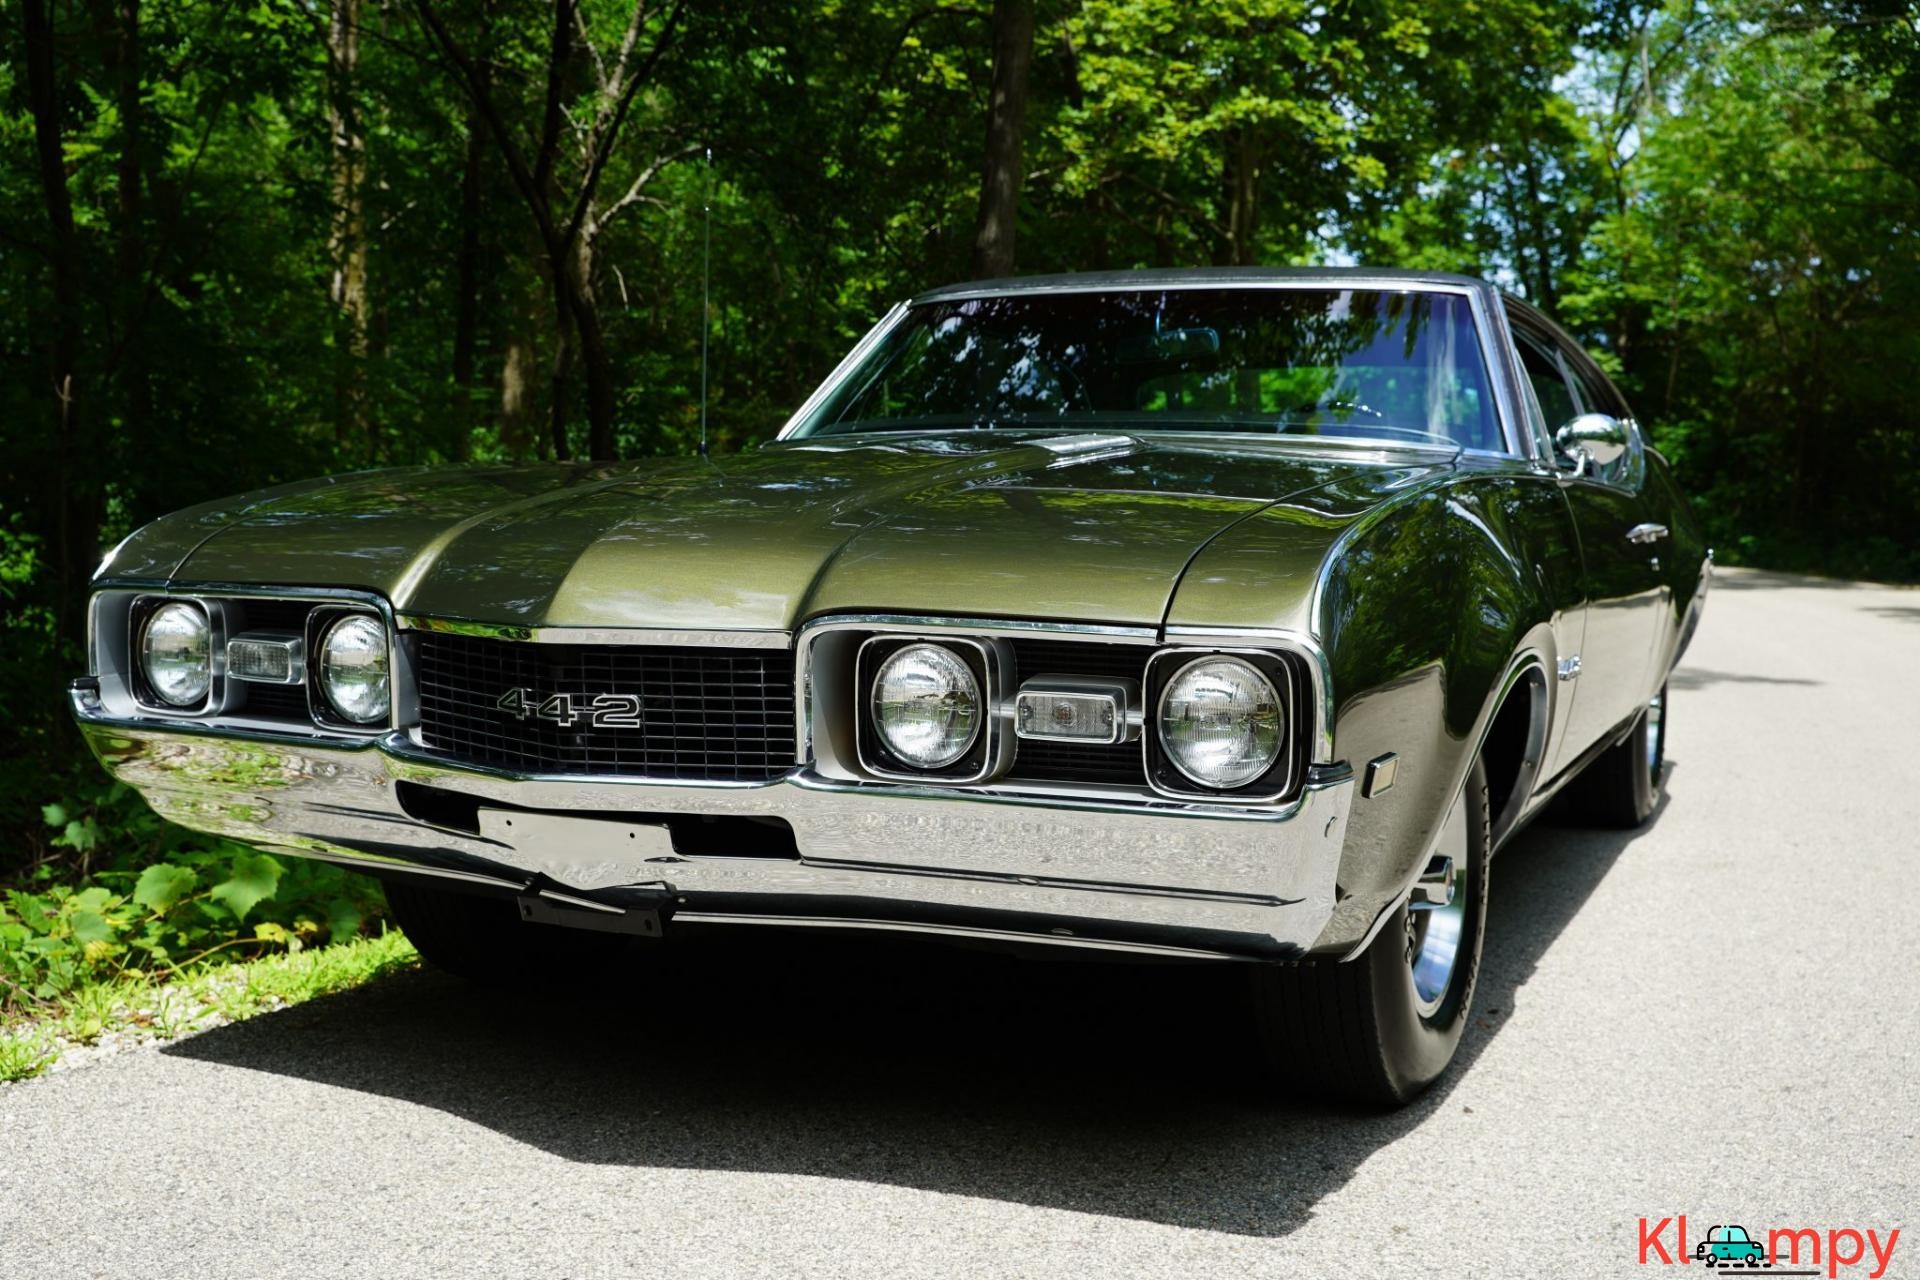 1968 Oldsmobile 442 Holiday Coupe Jade Gold - 1/28